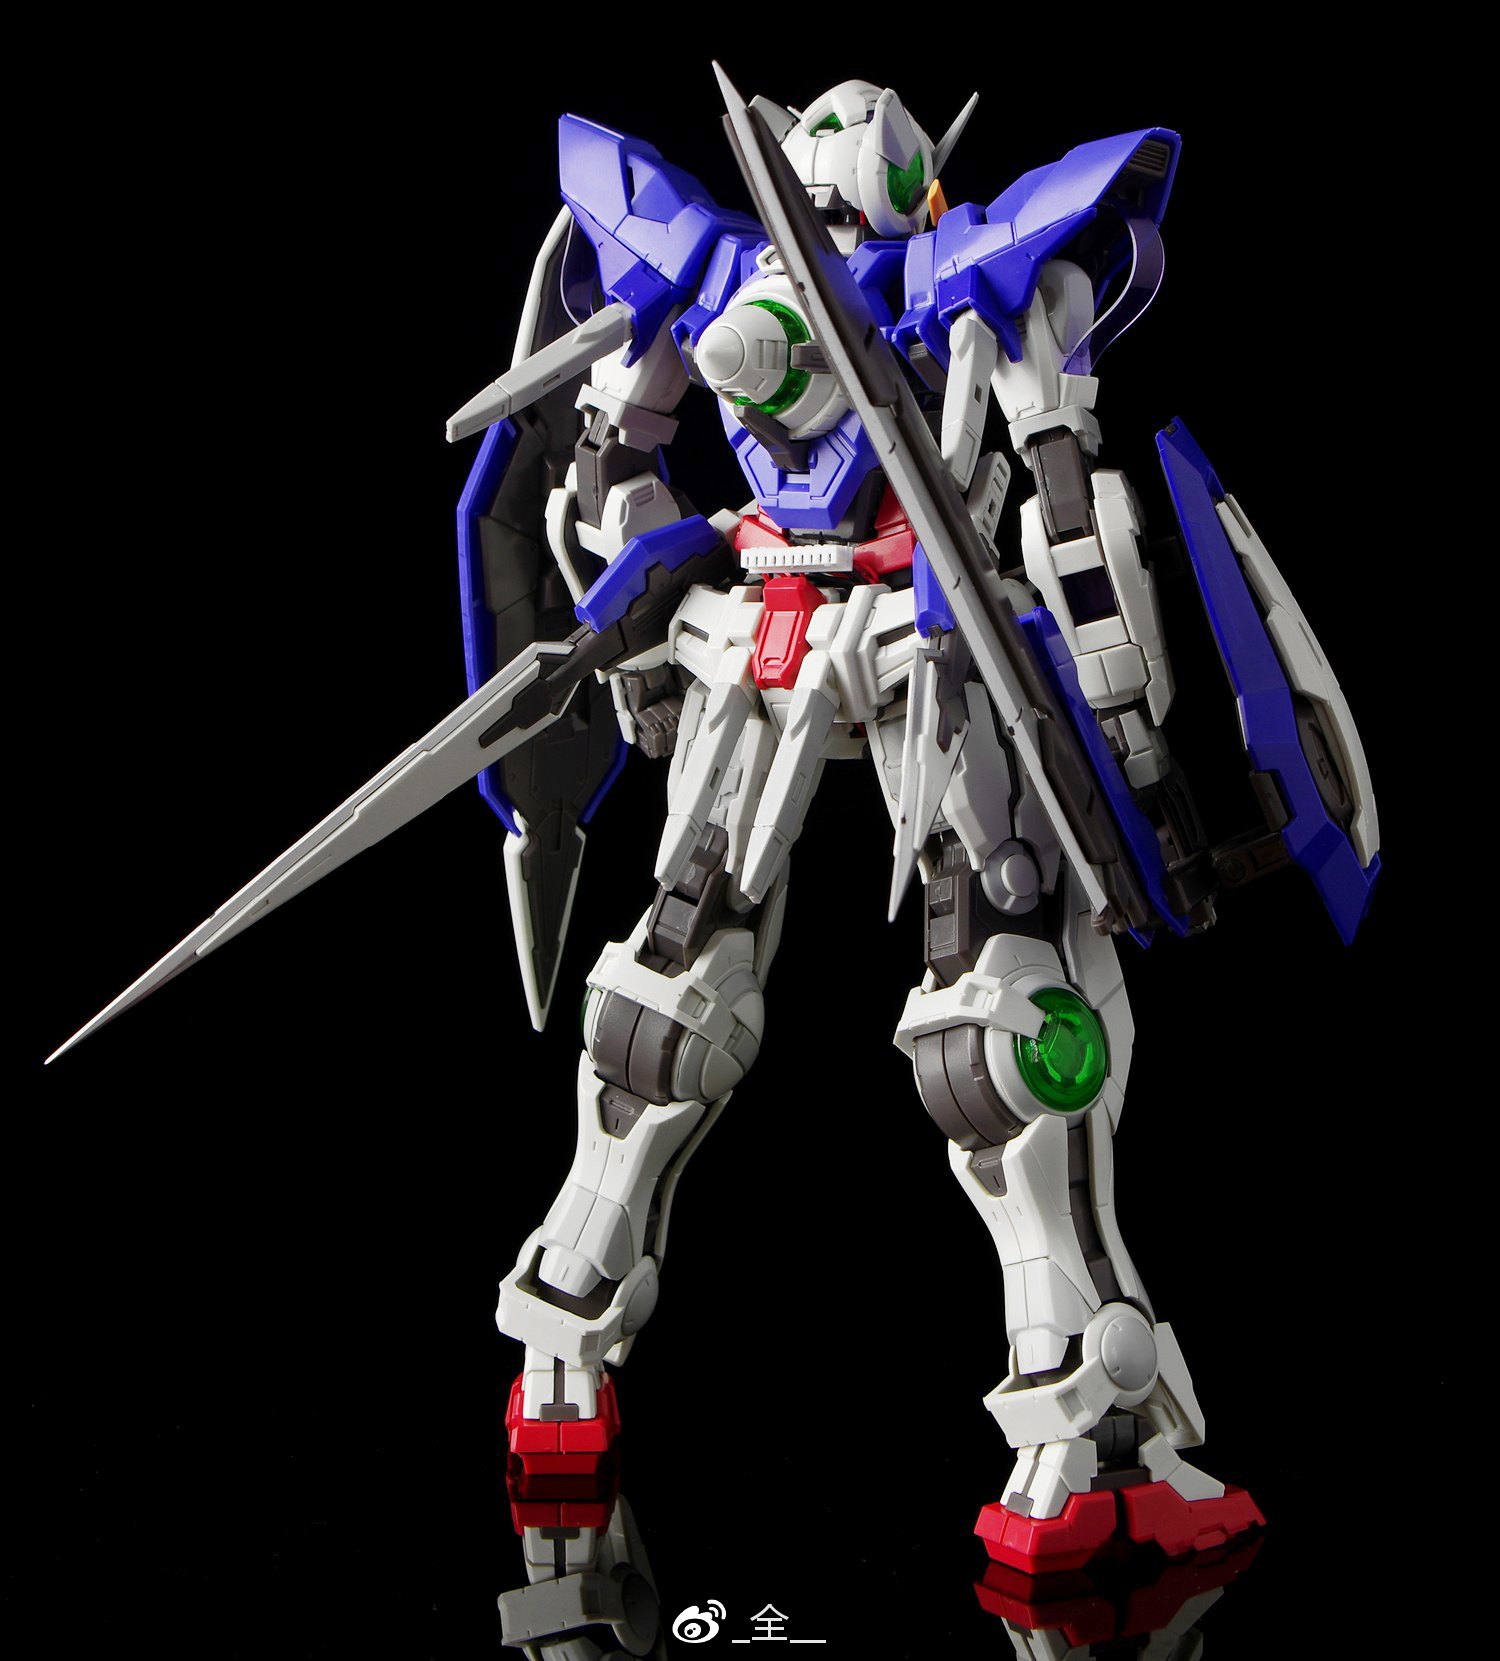 S269_mg_exia_led_hobby_star_inask_064.jpg